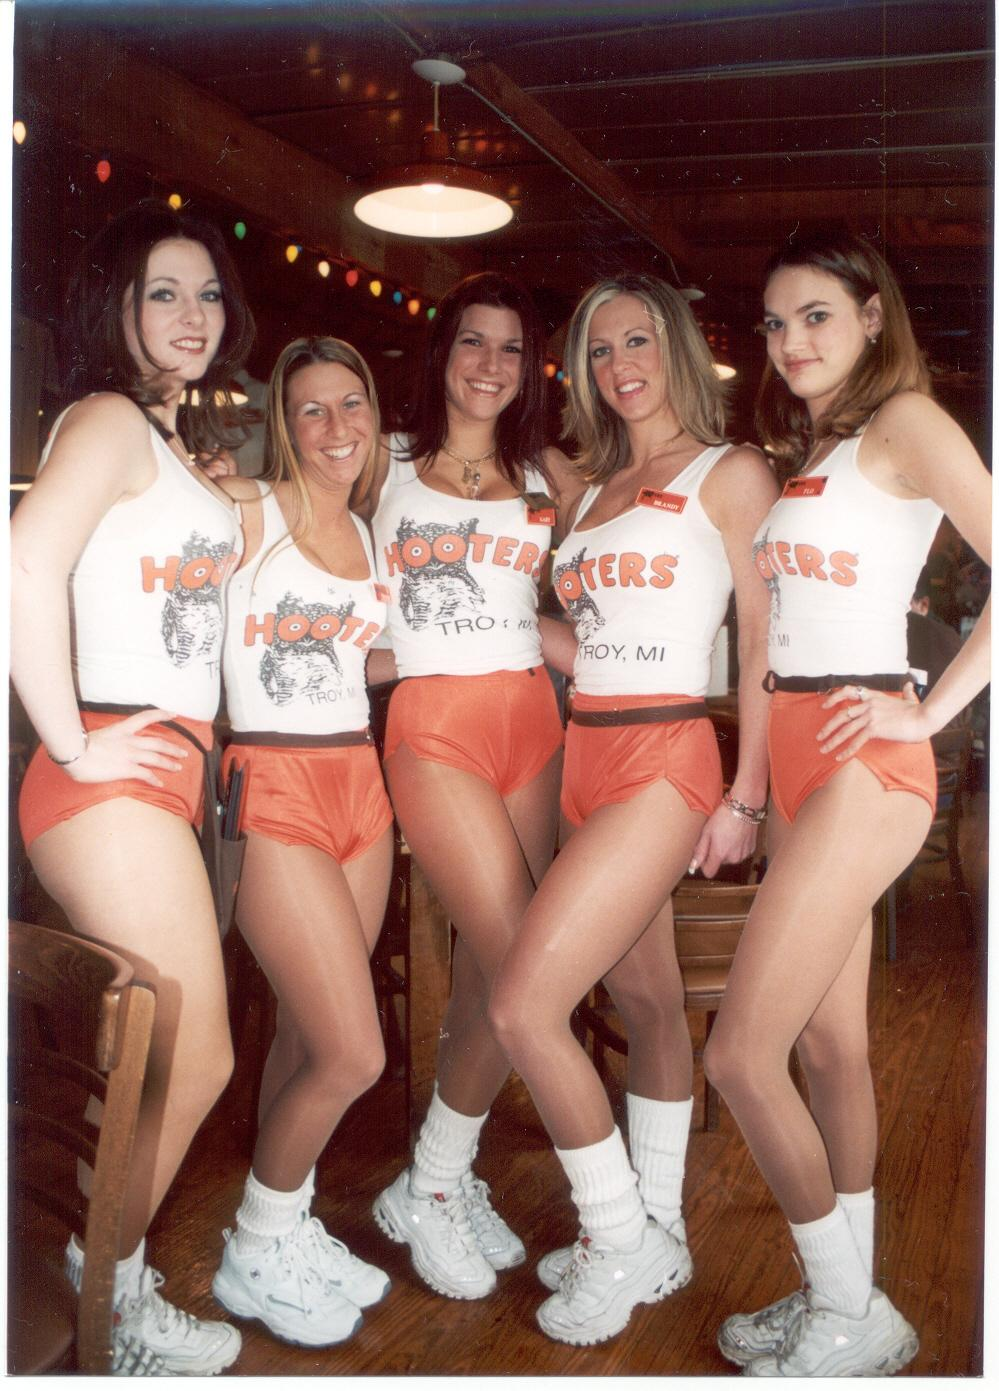 Hooters girl candid — photo 6